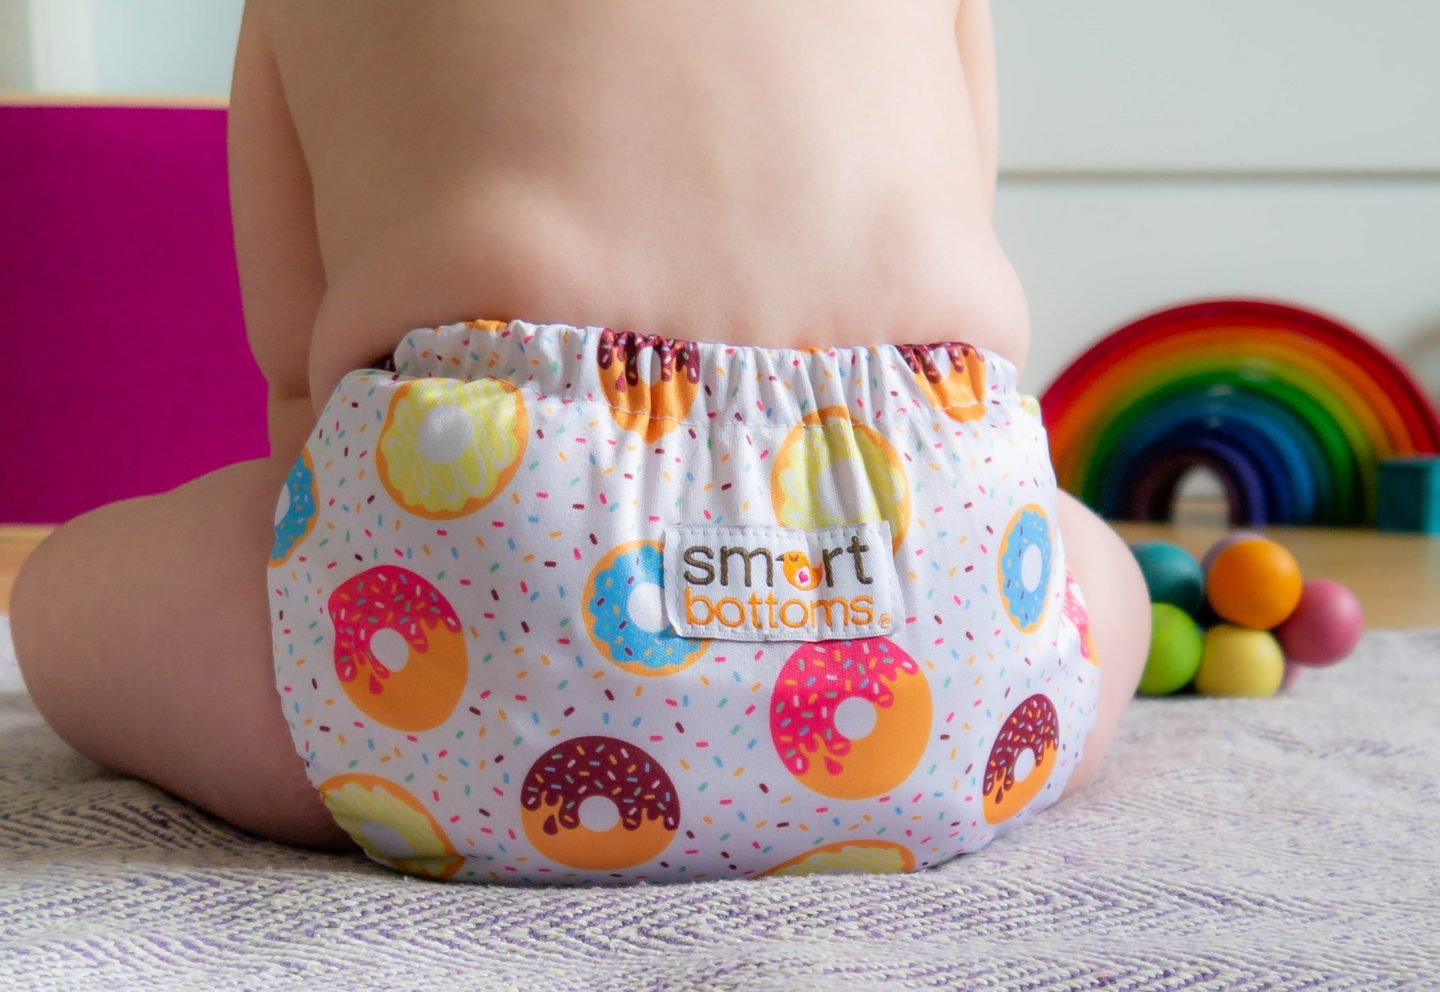 Cloth nappies are a great way to start a zero waste lifestyle.